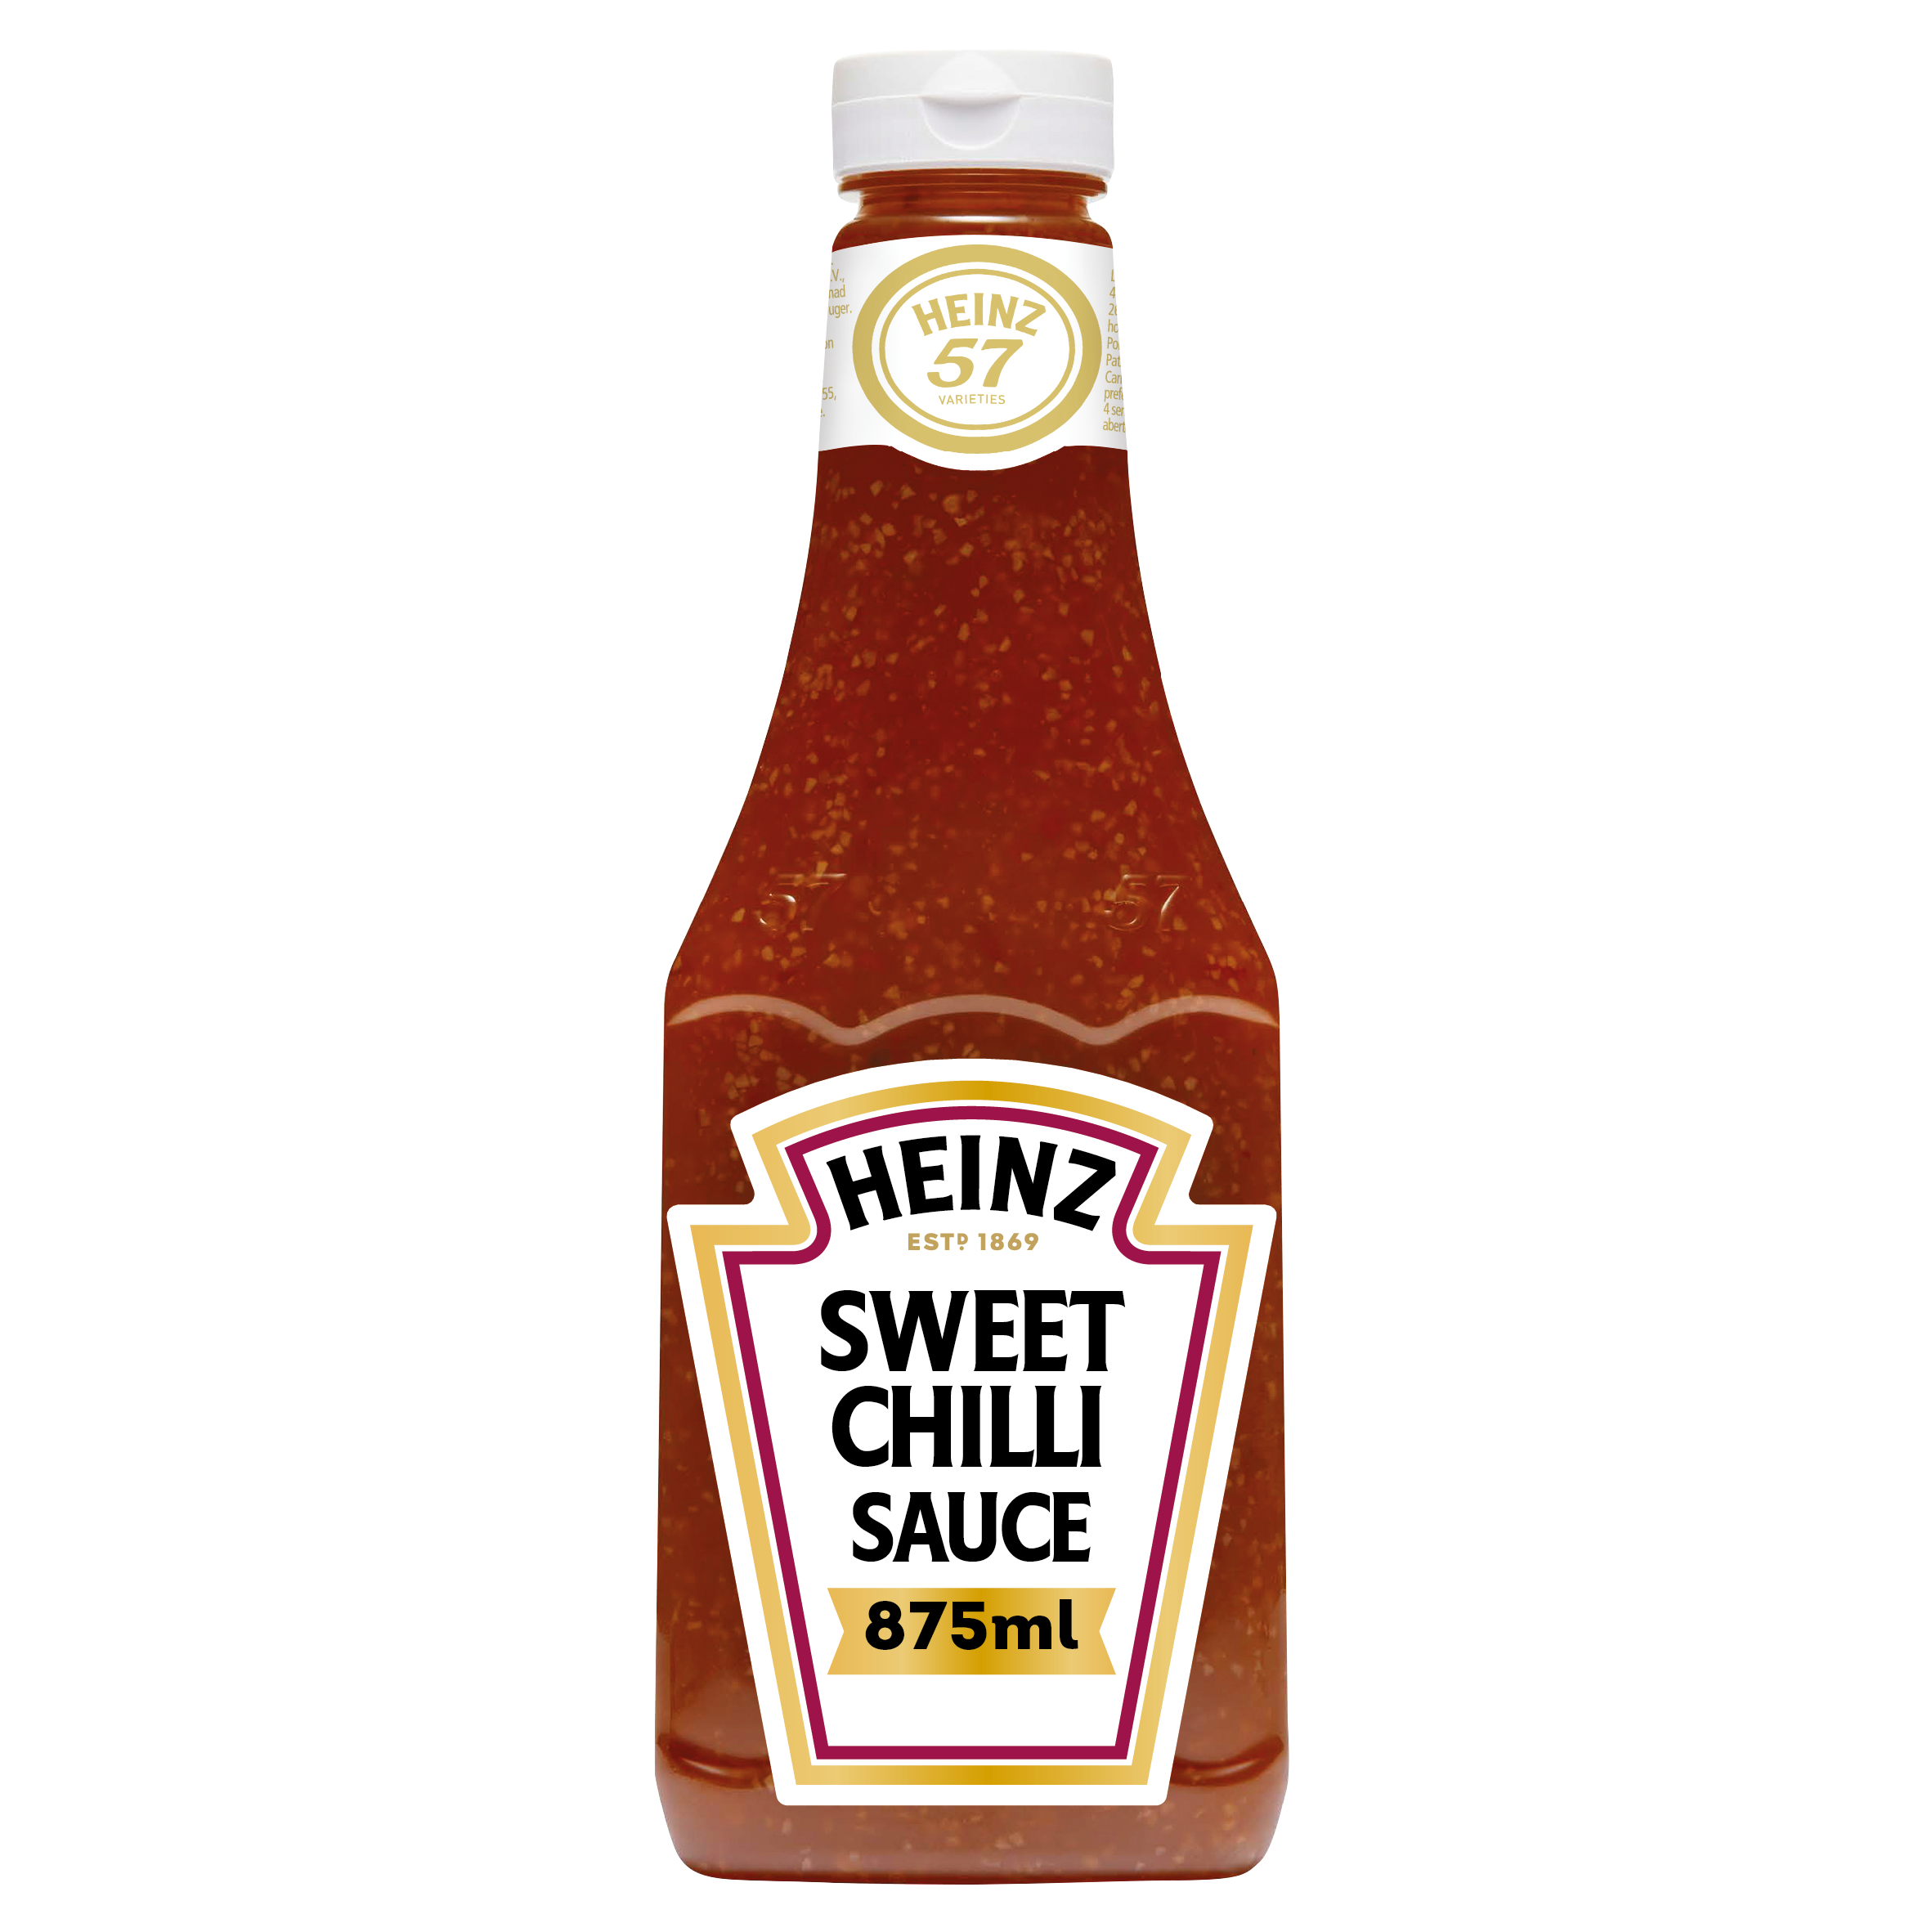 Heinz Sweet Chilli 875ml image